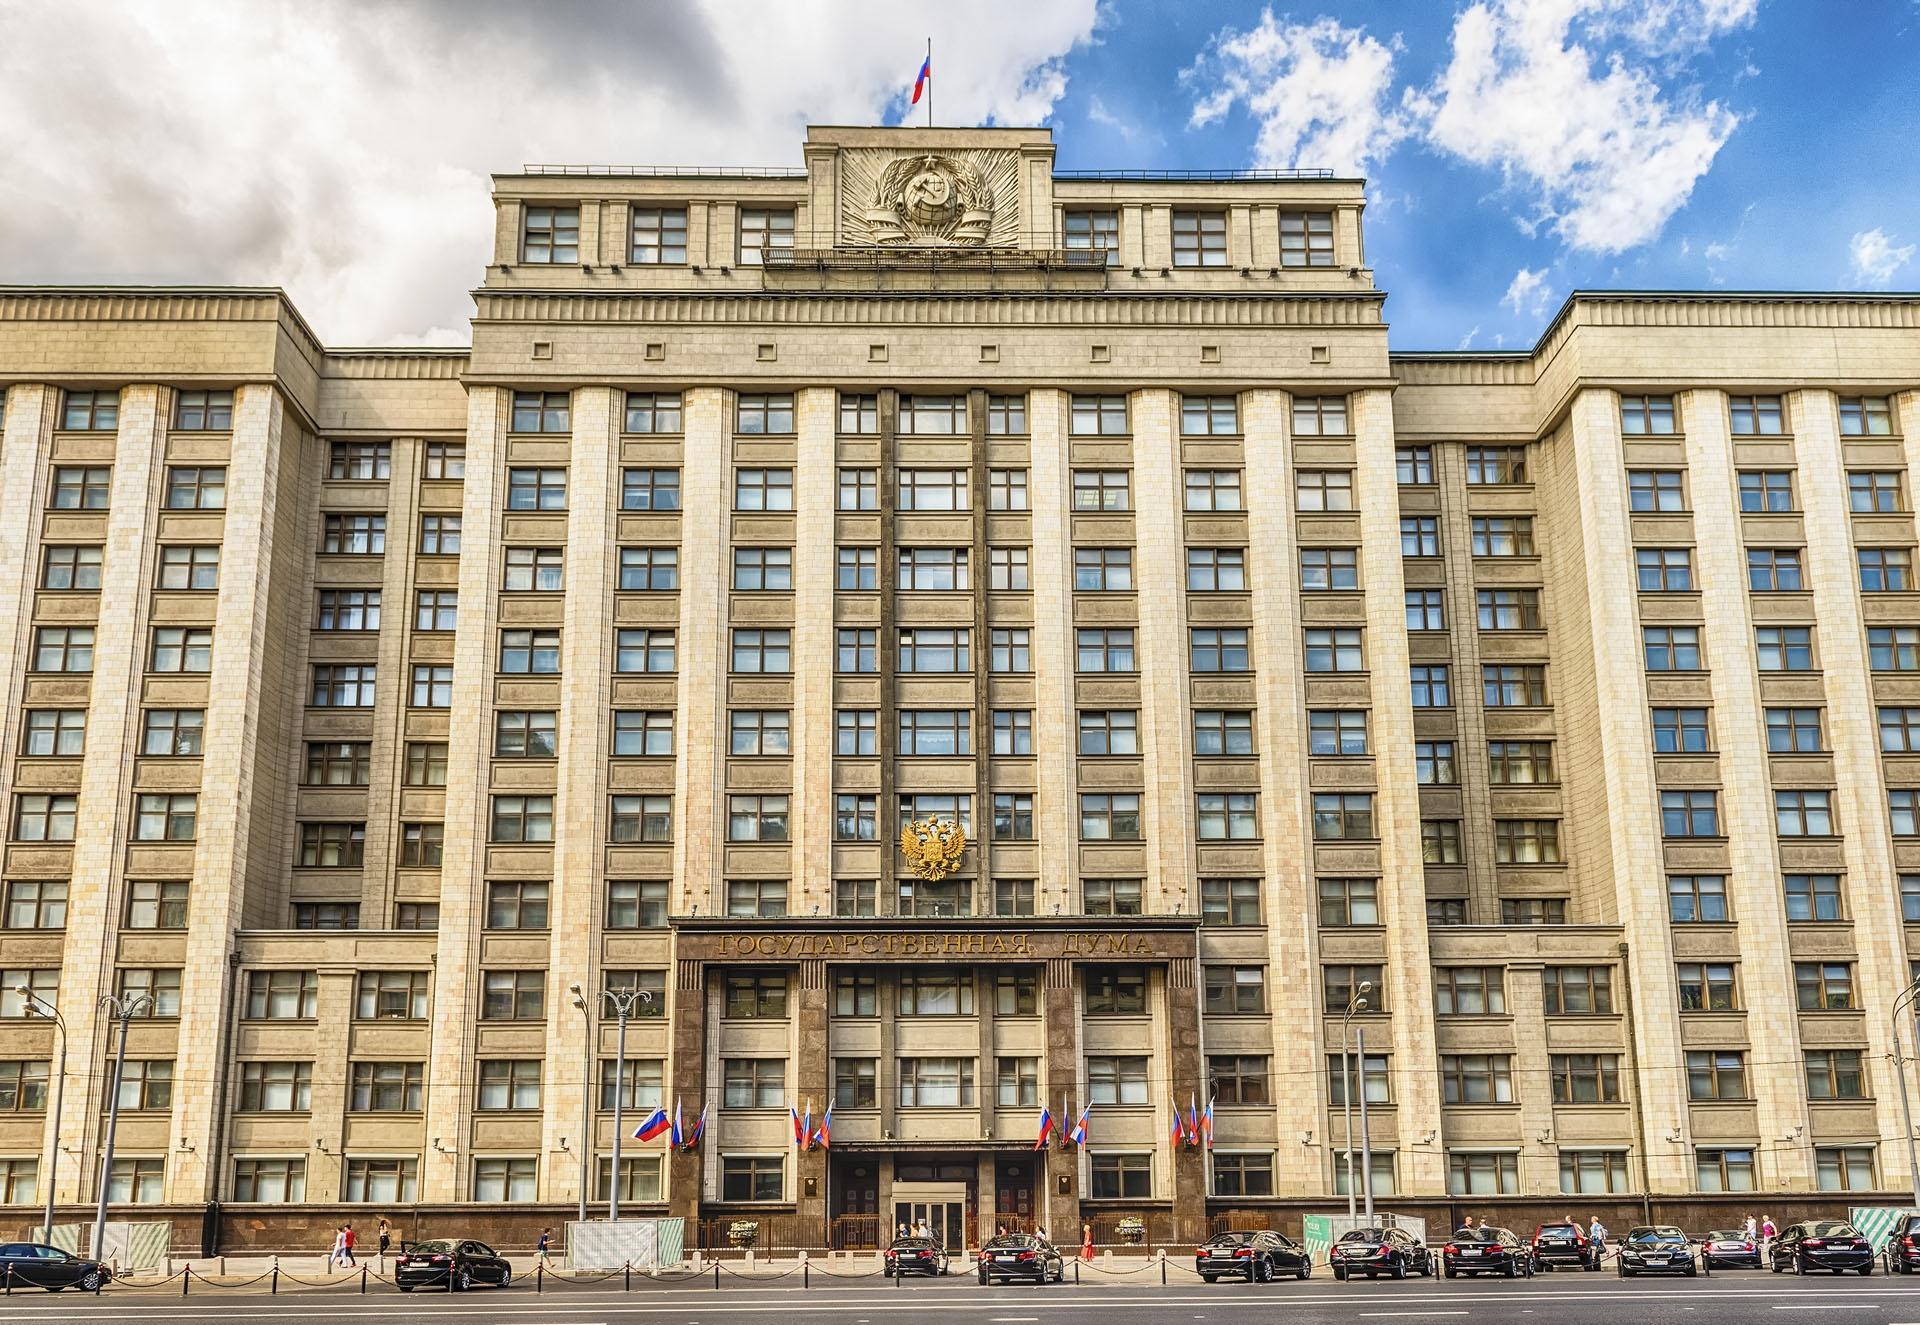 Facade of the State Duma, Parliament building of Russian Federation